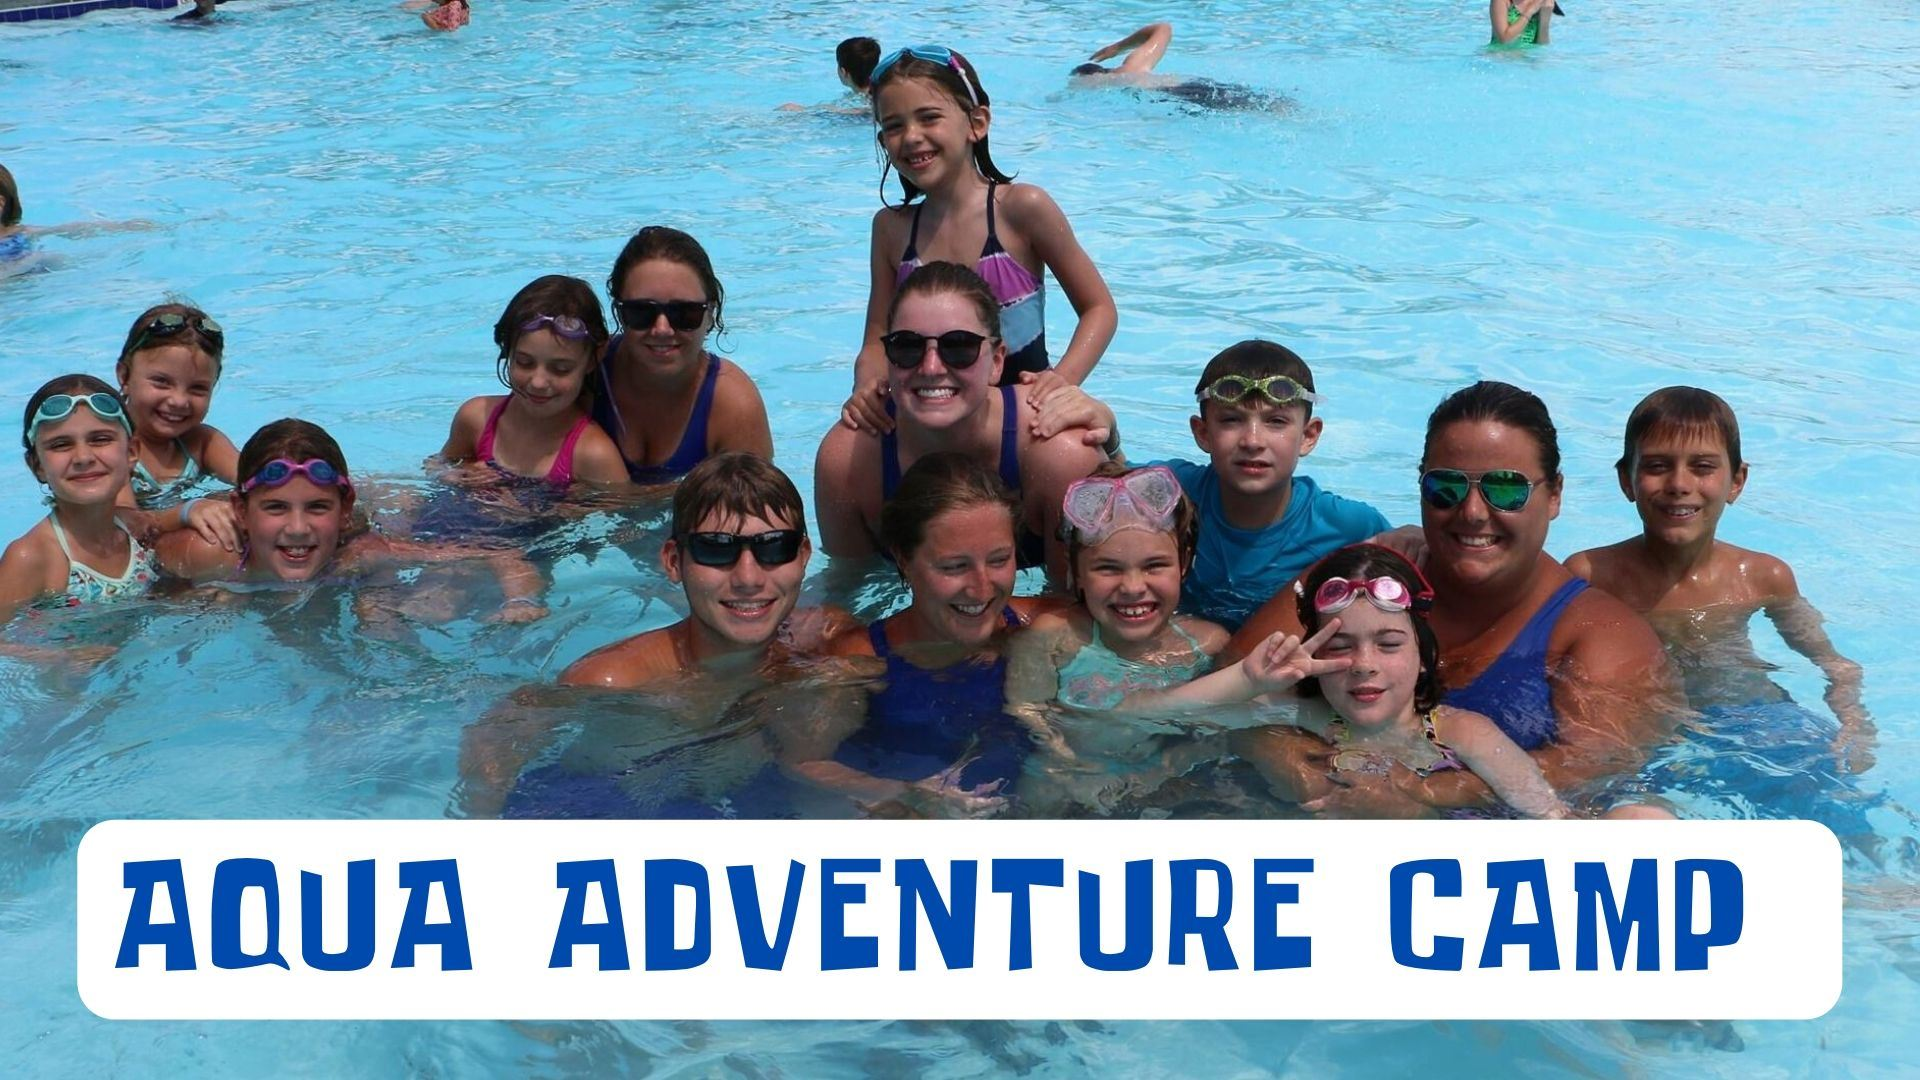 Aqua Adventure Camp web